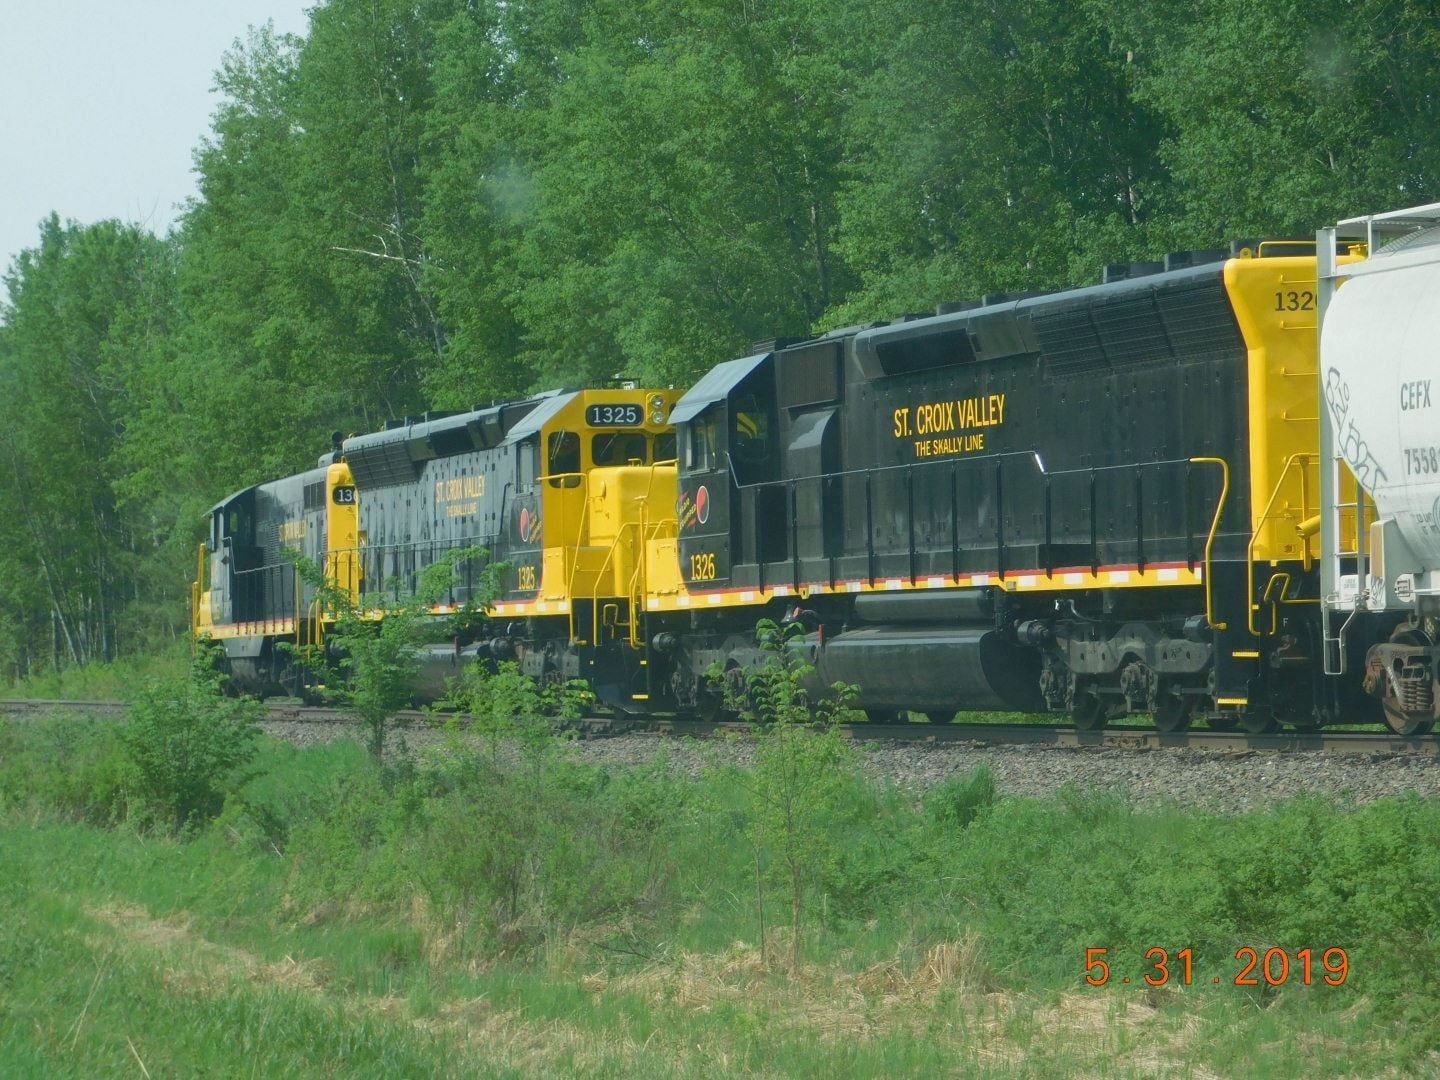 Pin by Delray415 on St. Croix Valley Railroad (The Skally